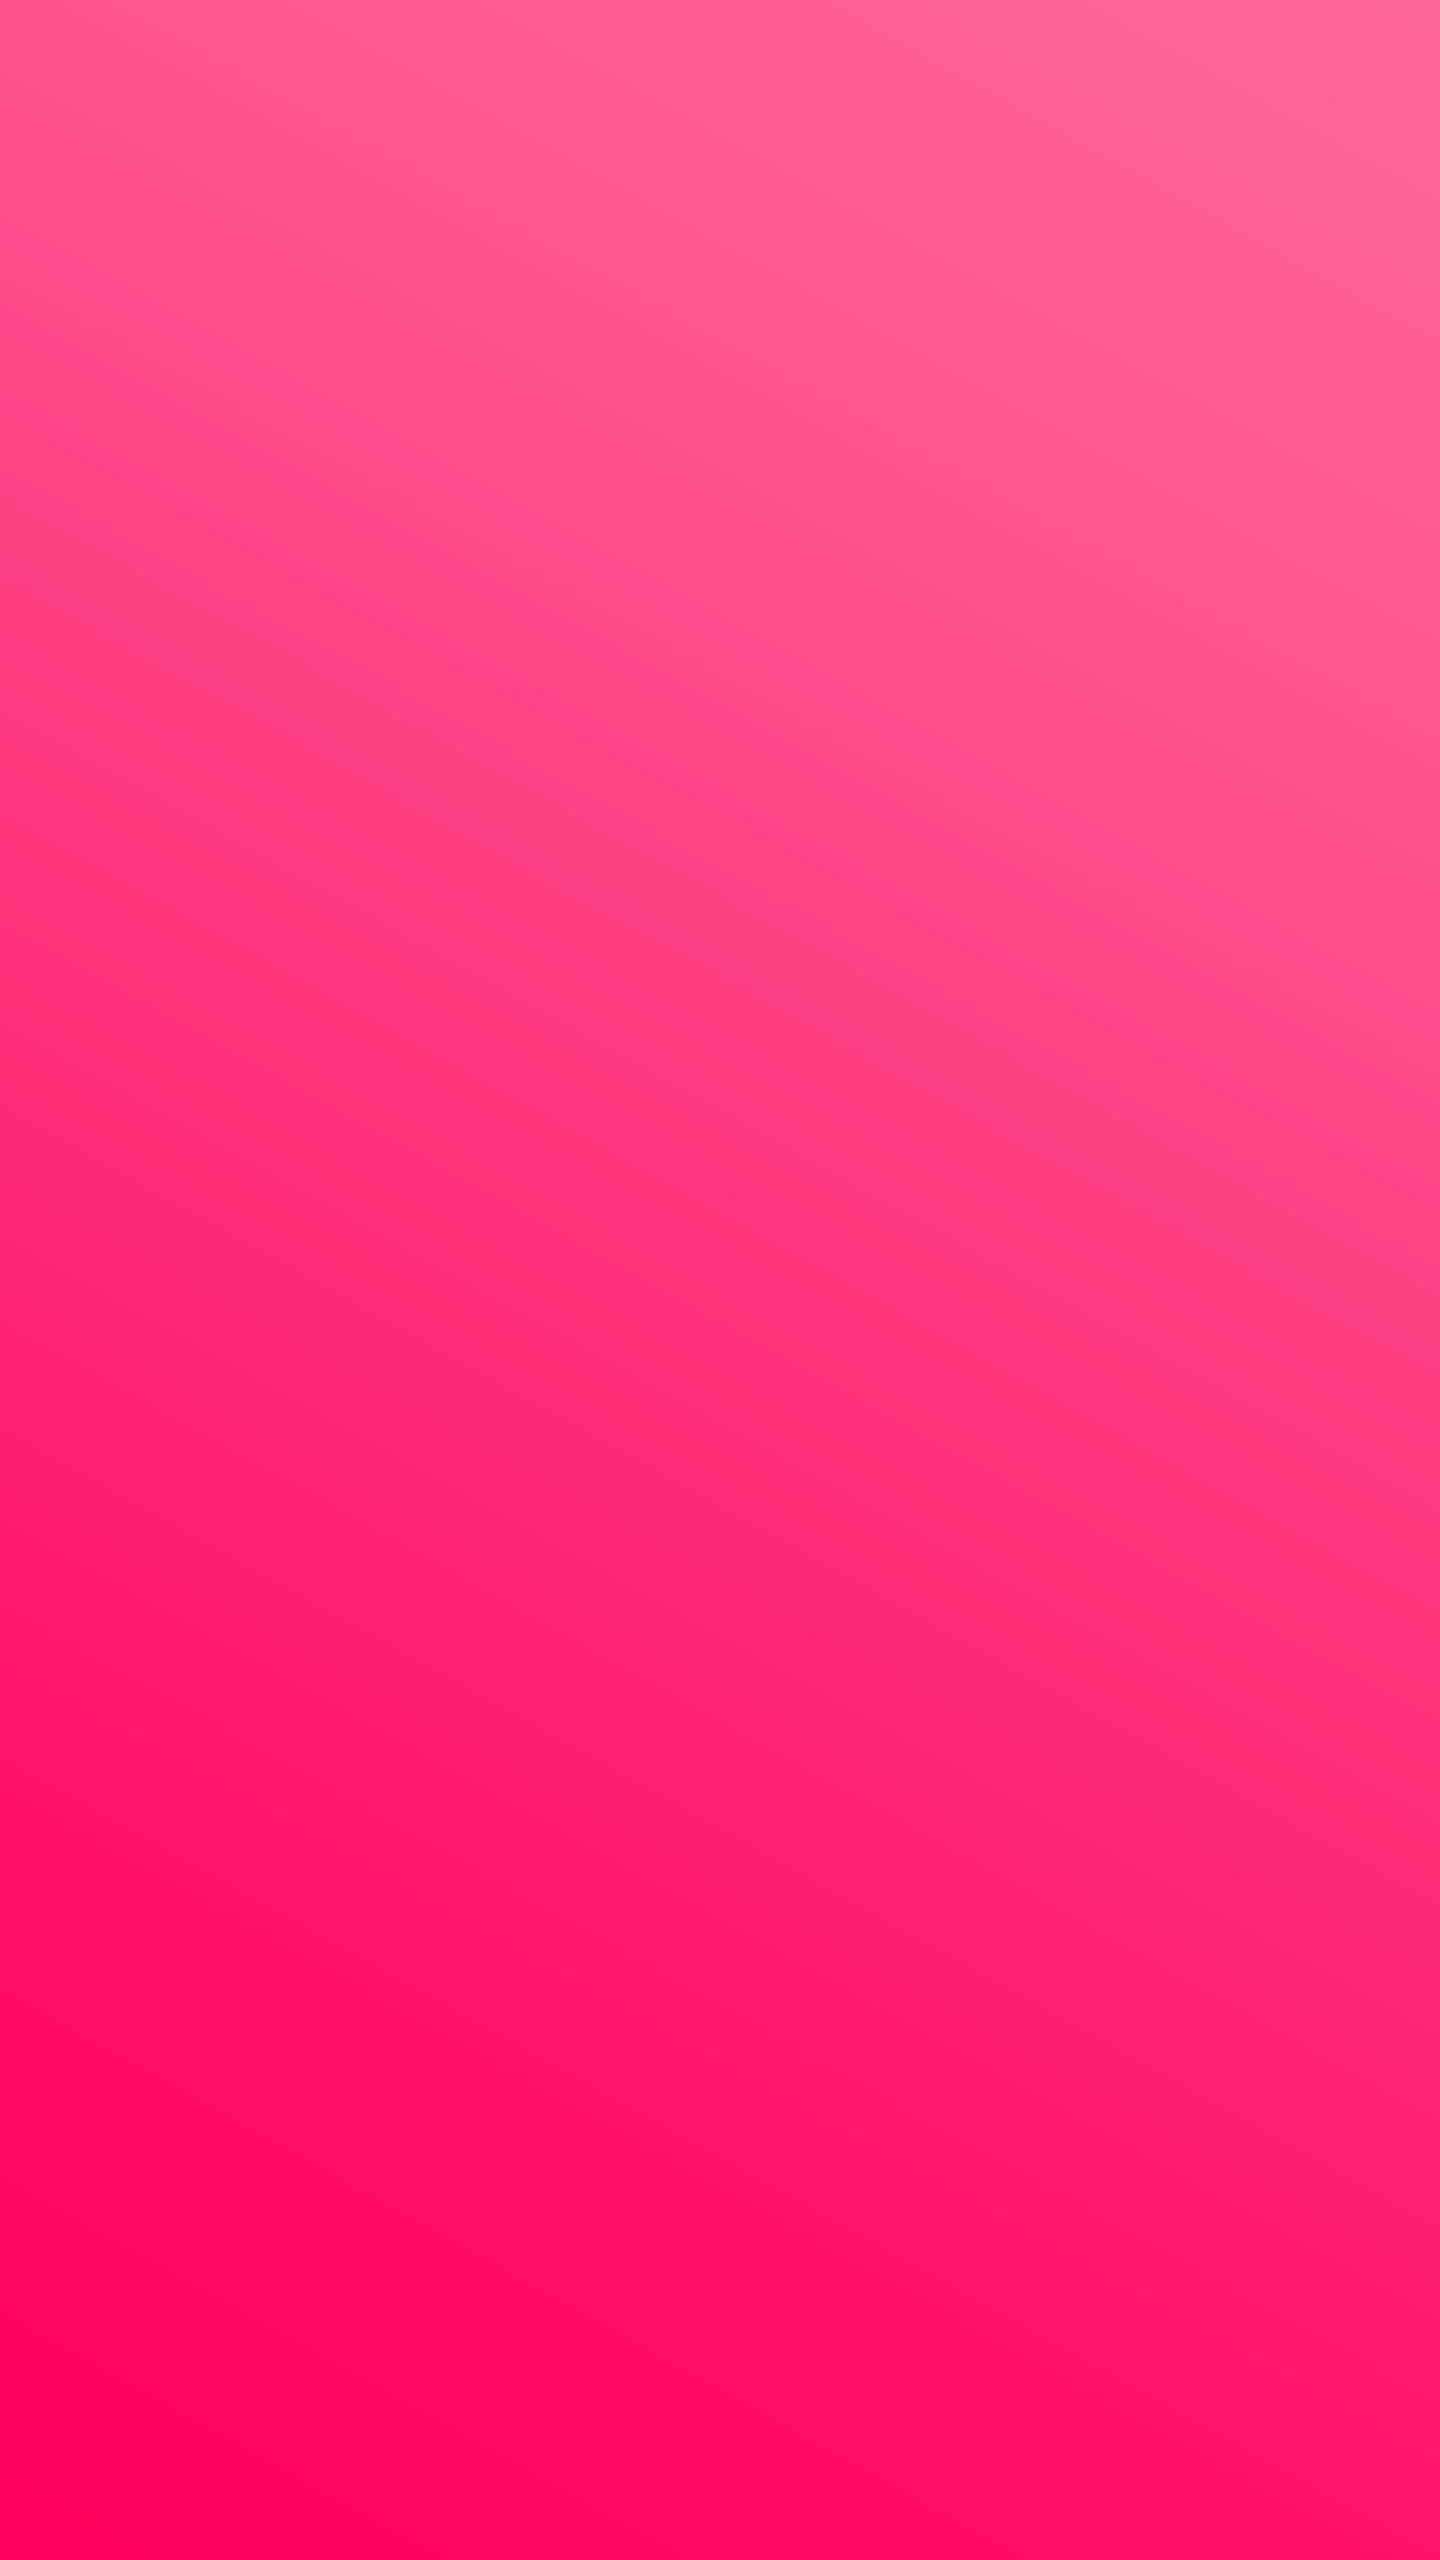 Preview wallpaper pink, solid, color, light, bright 1440×2560